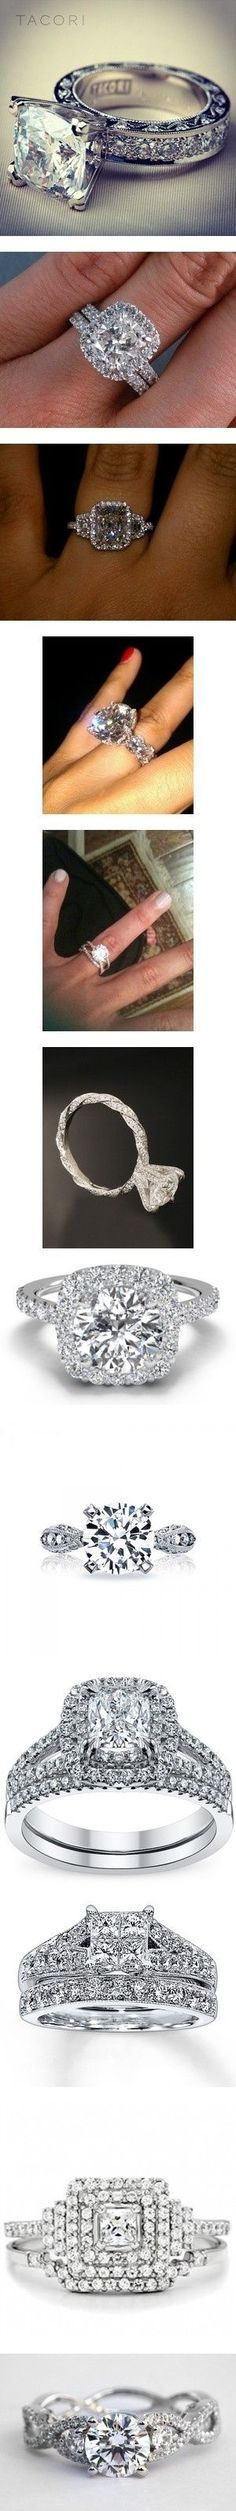 """""""Wedding Rings! (my DREAM wedding rings)"""" by callico32 on Polyvore by donna.moses.96"""